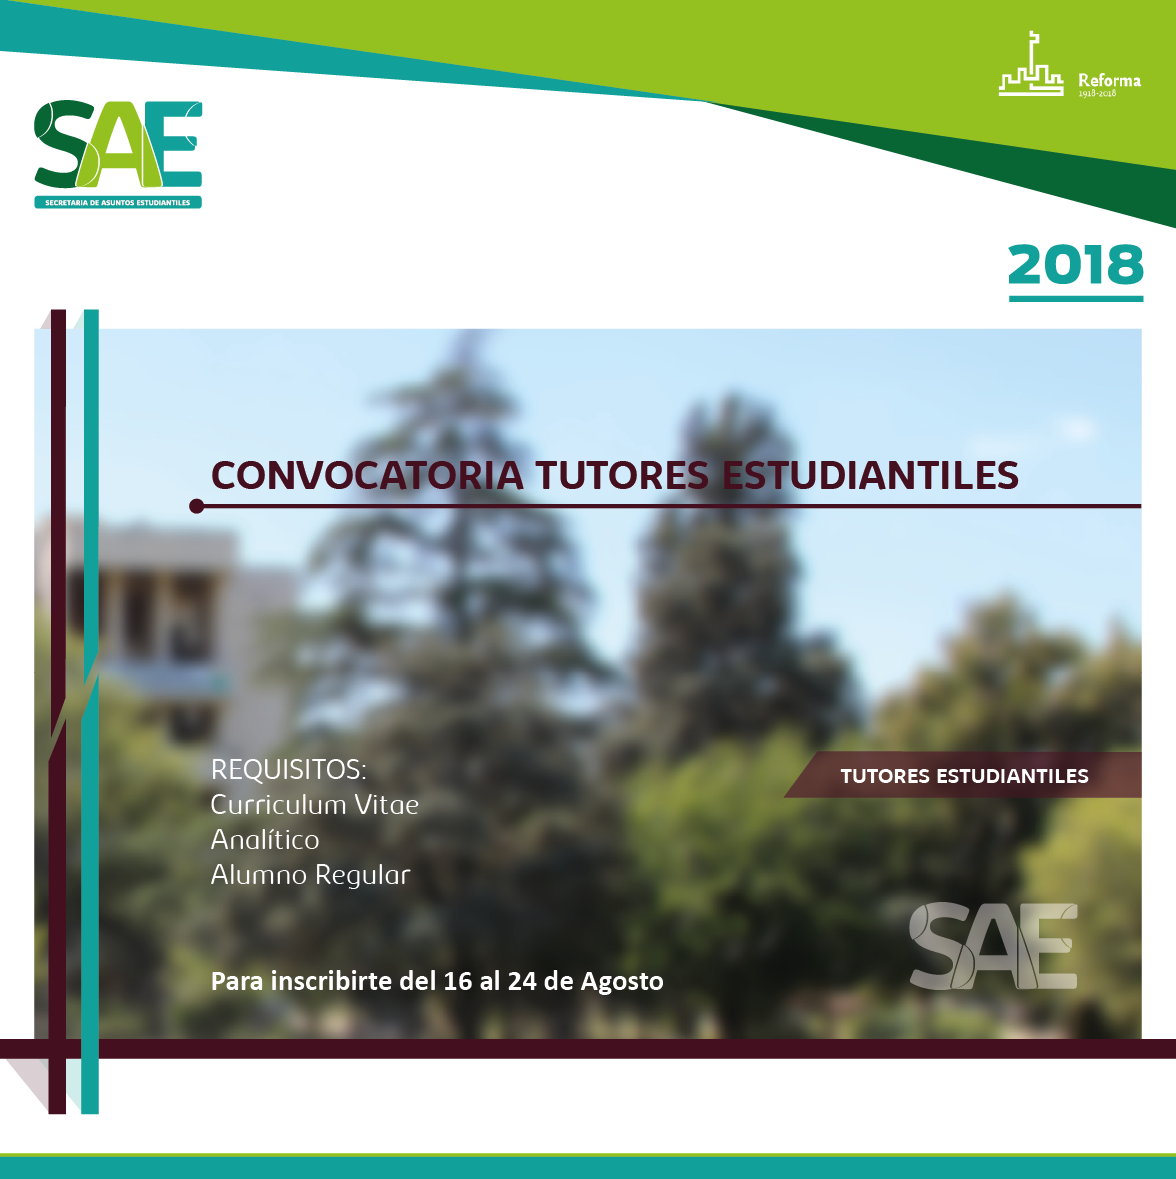 convocatoria tutores estudiantiles